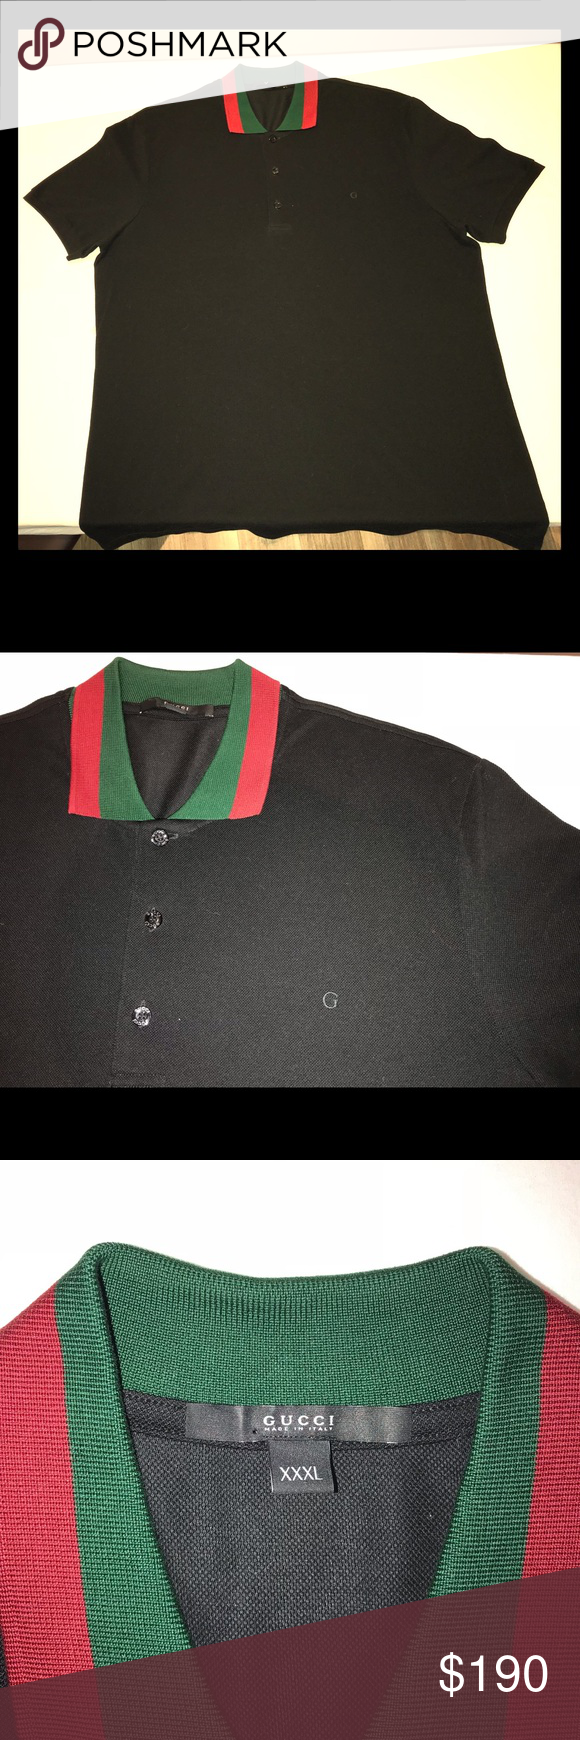 0517994f Gucci Polo This black Gucci polo with red & green collar is in excellent  condition;